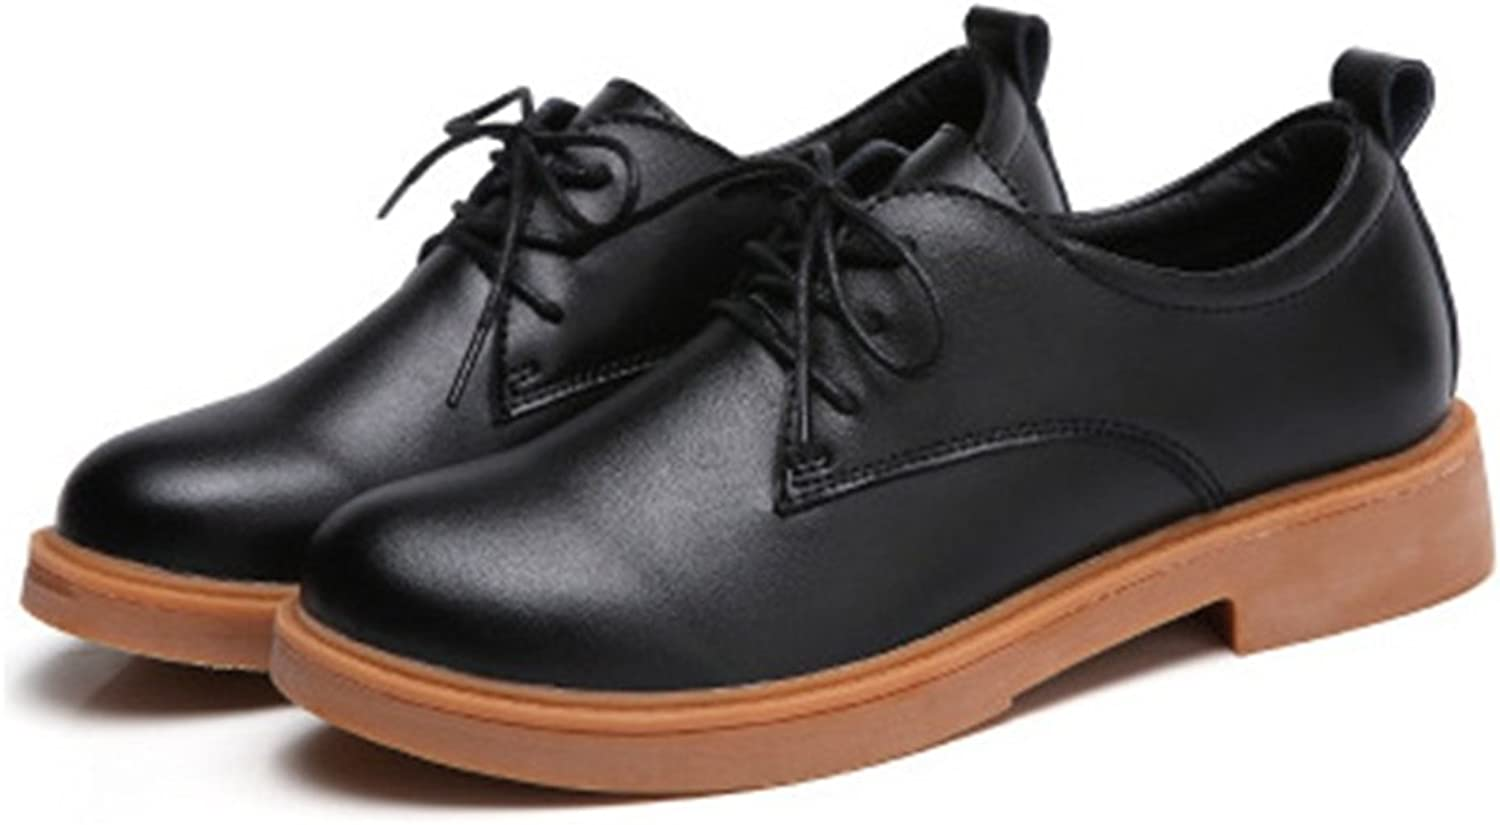 T-JULY Women's Retro Oxfords shoes - Classic Lace-up Low Heel Round Toe Casual shoes